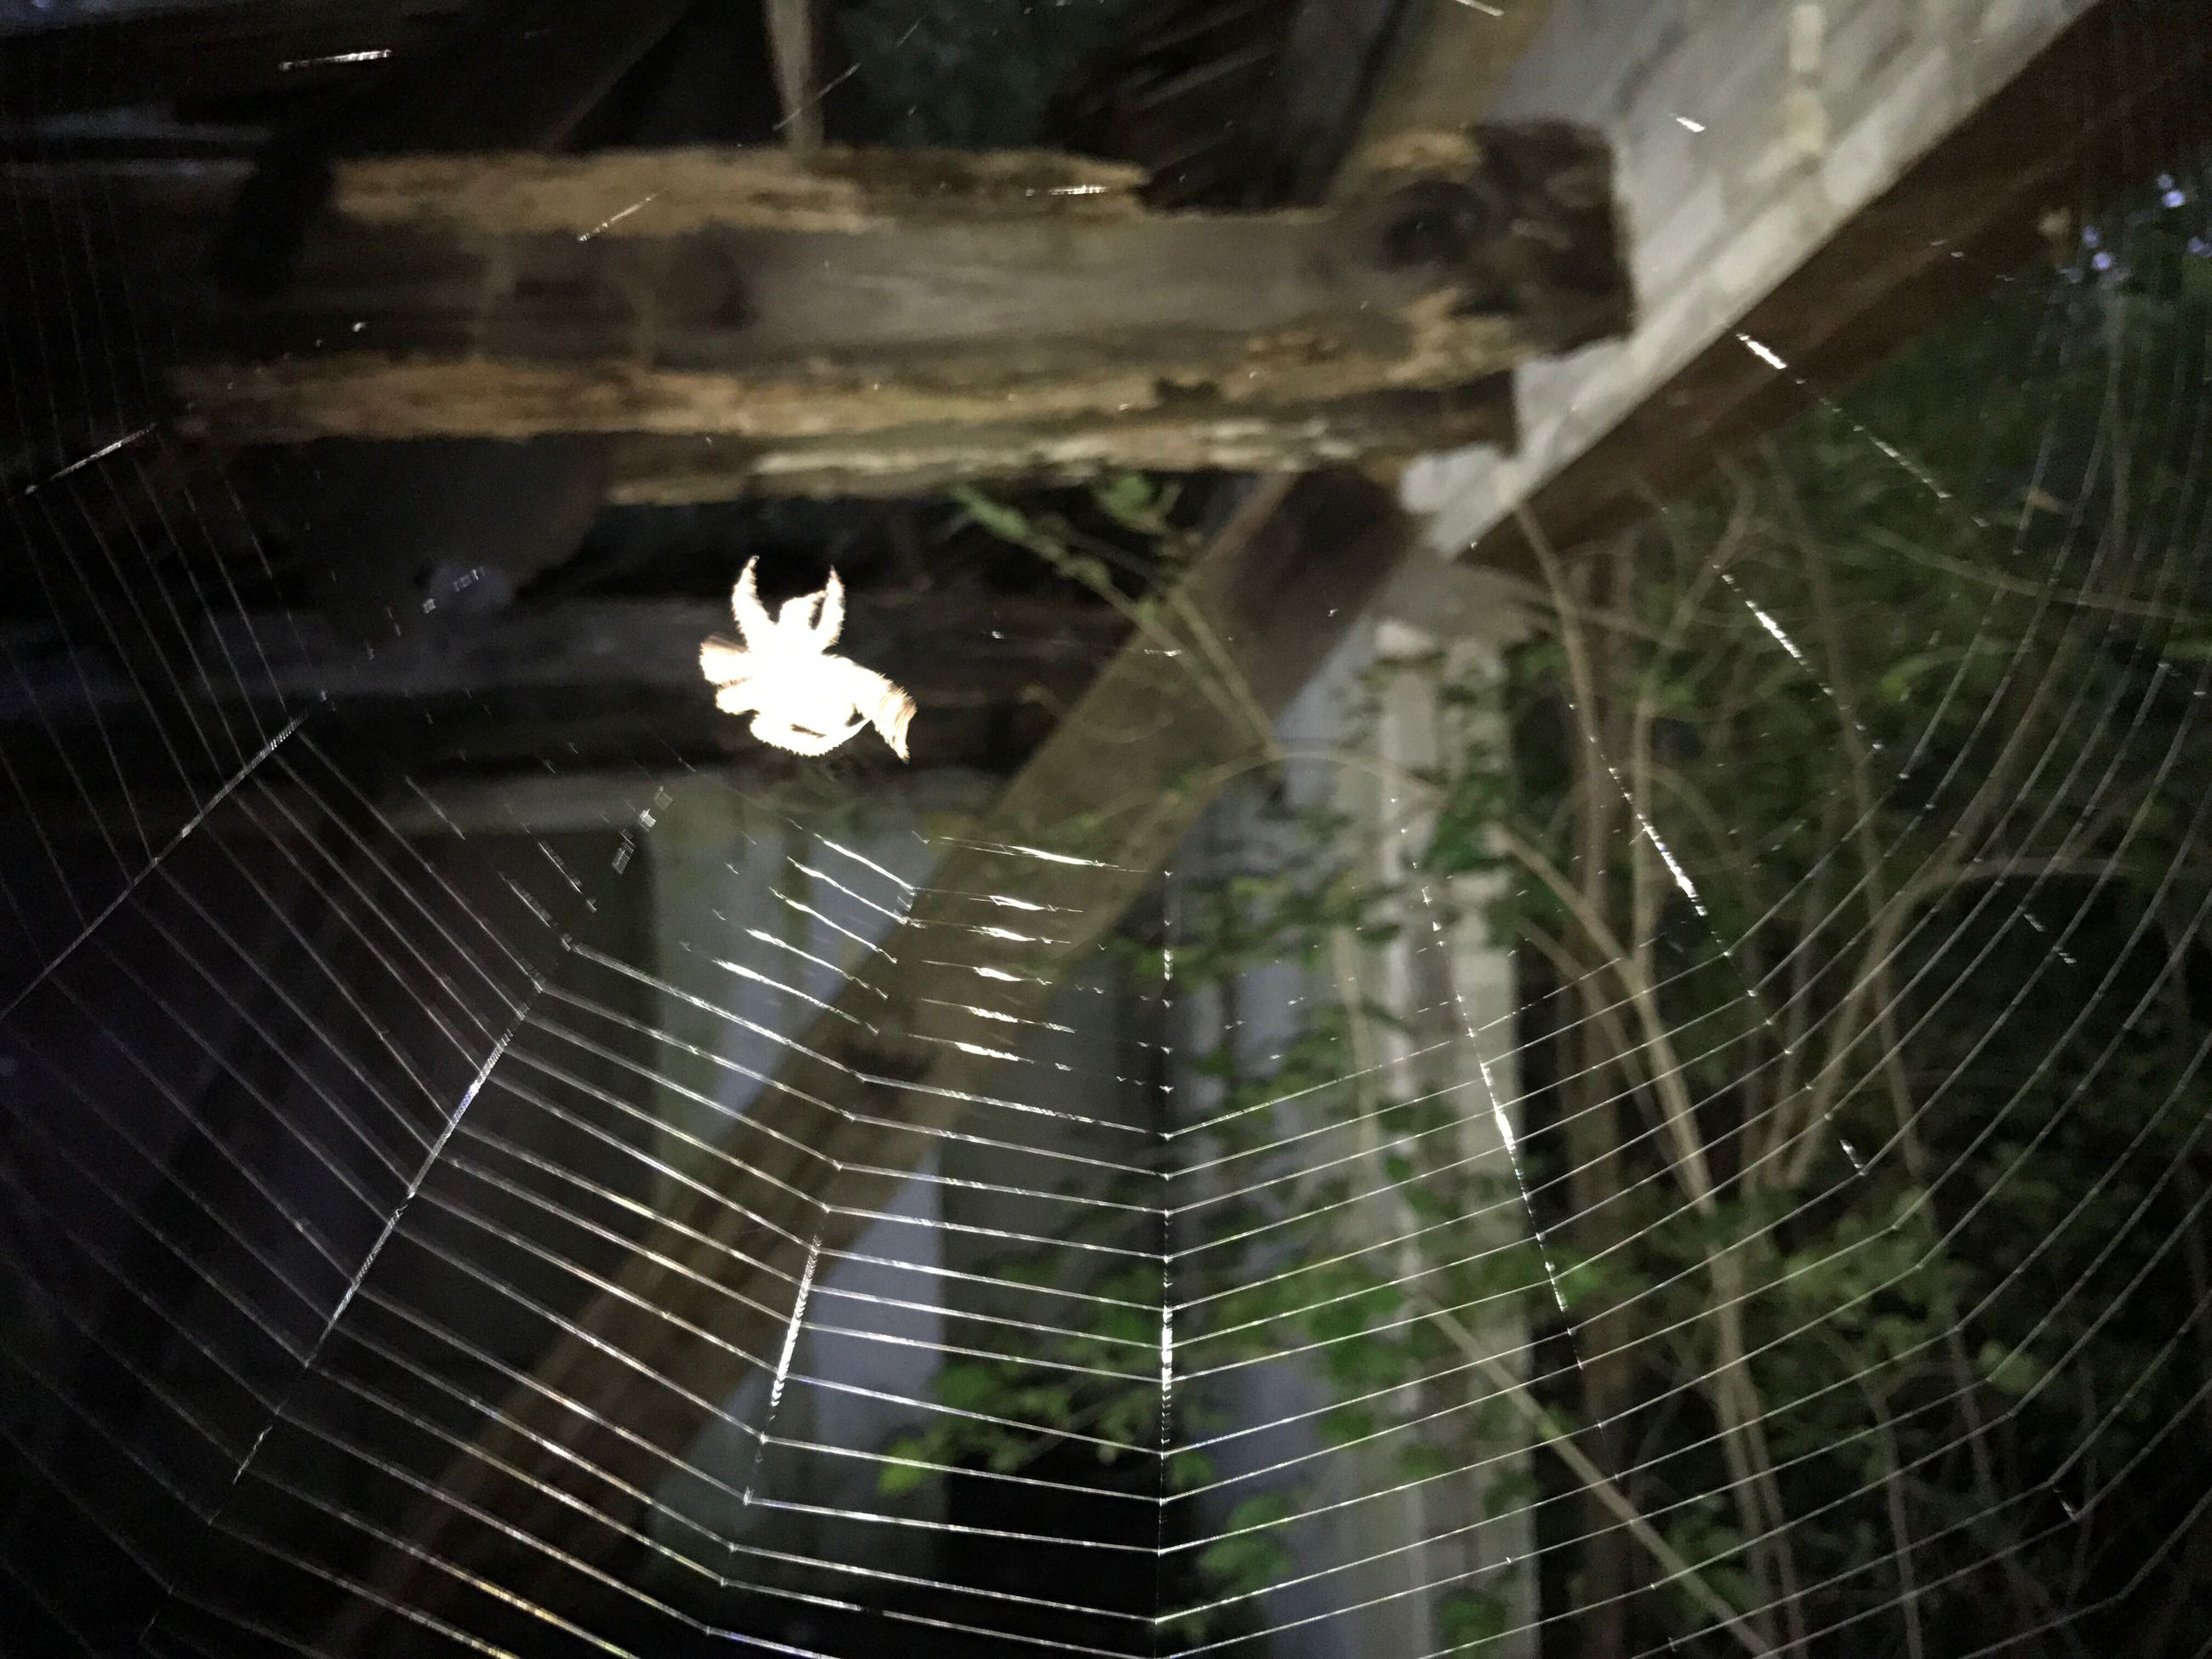 spider, spider web, animal themes, one animal, web, insect, animals in the wild, close-up, day, no people, animal wildlife, focus on foreground, nature, outdoors, fragility